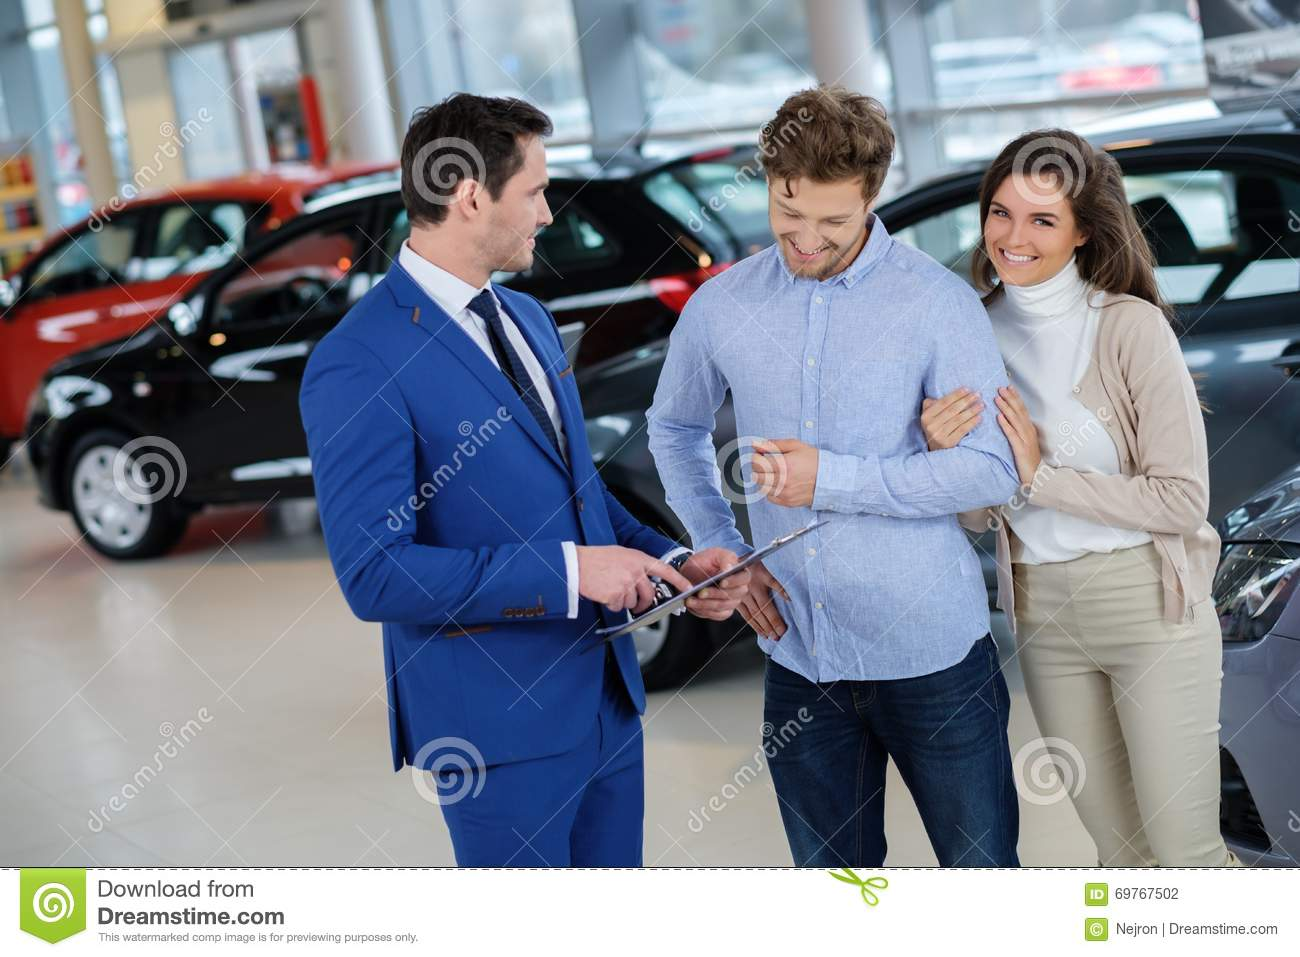 Salesman talking to a young couple at the dealership showroom.